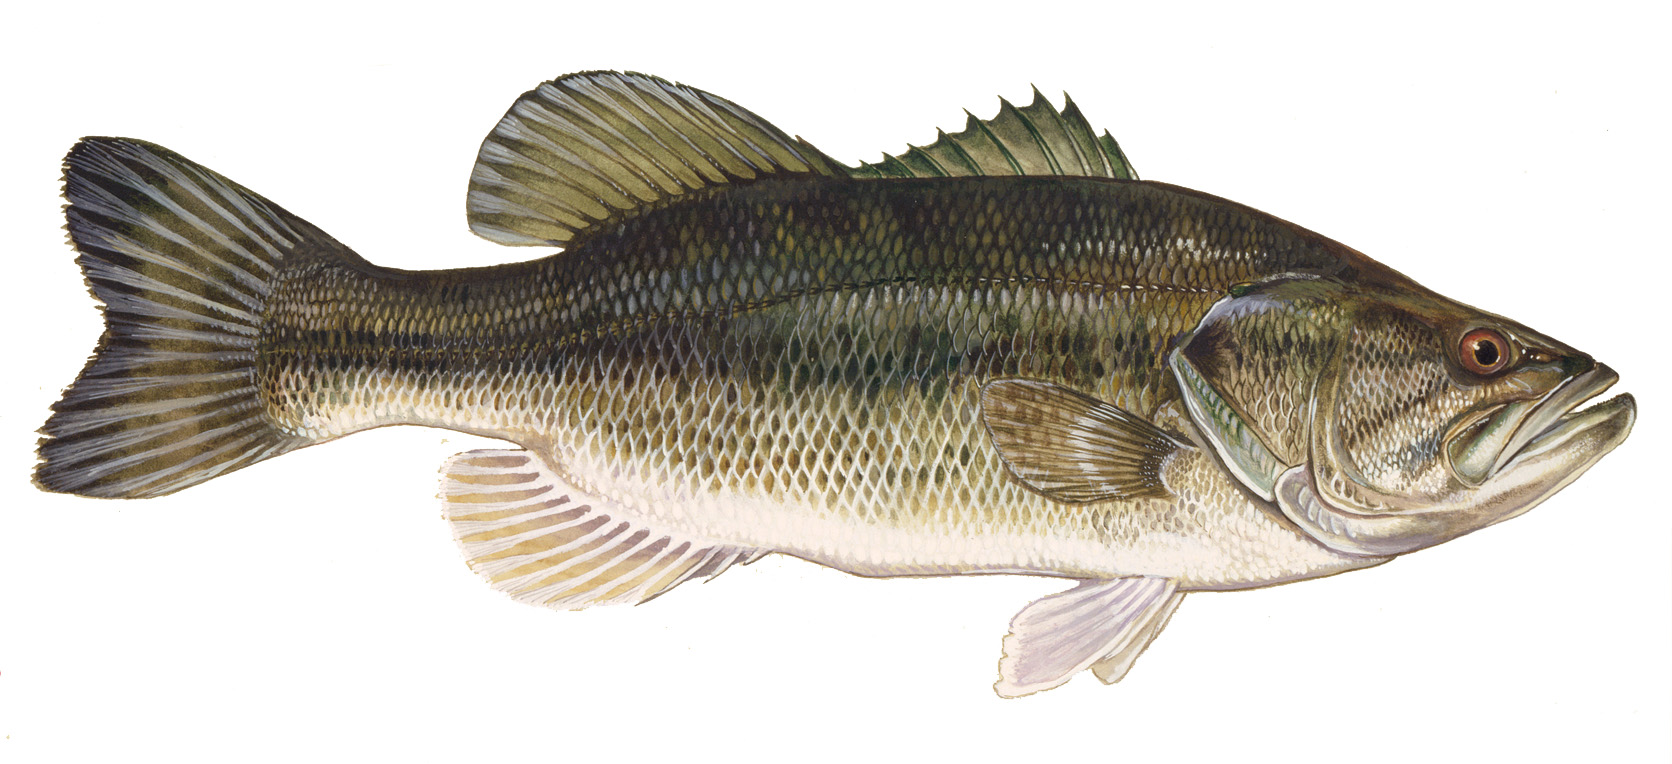 Fish identification largemouth bass fishing basics for Pictures of big fish